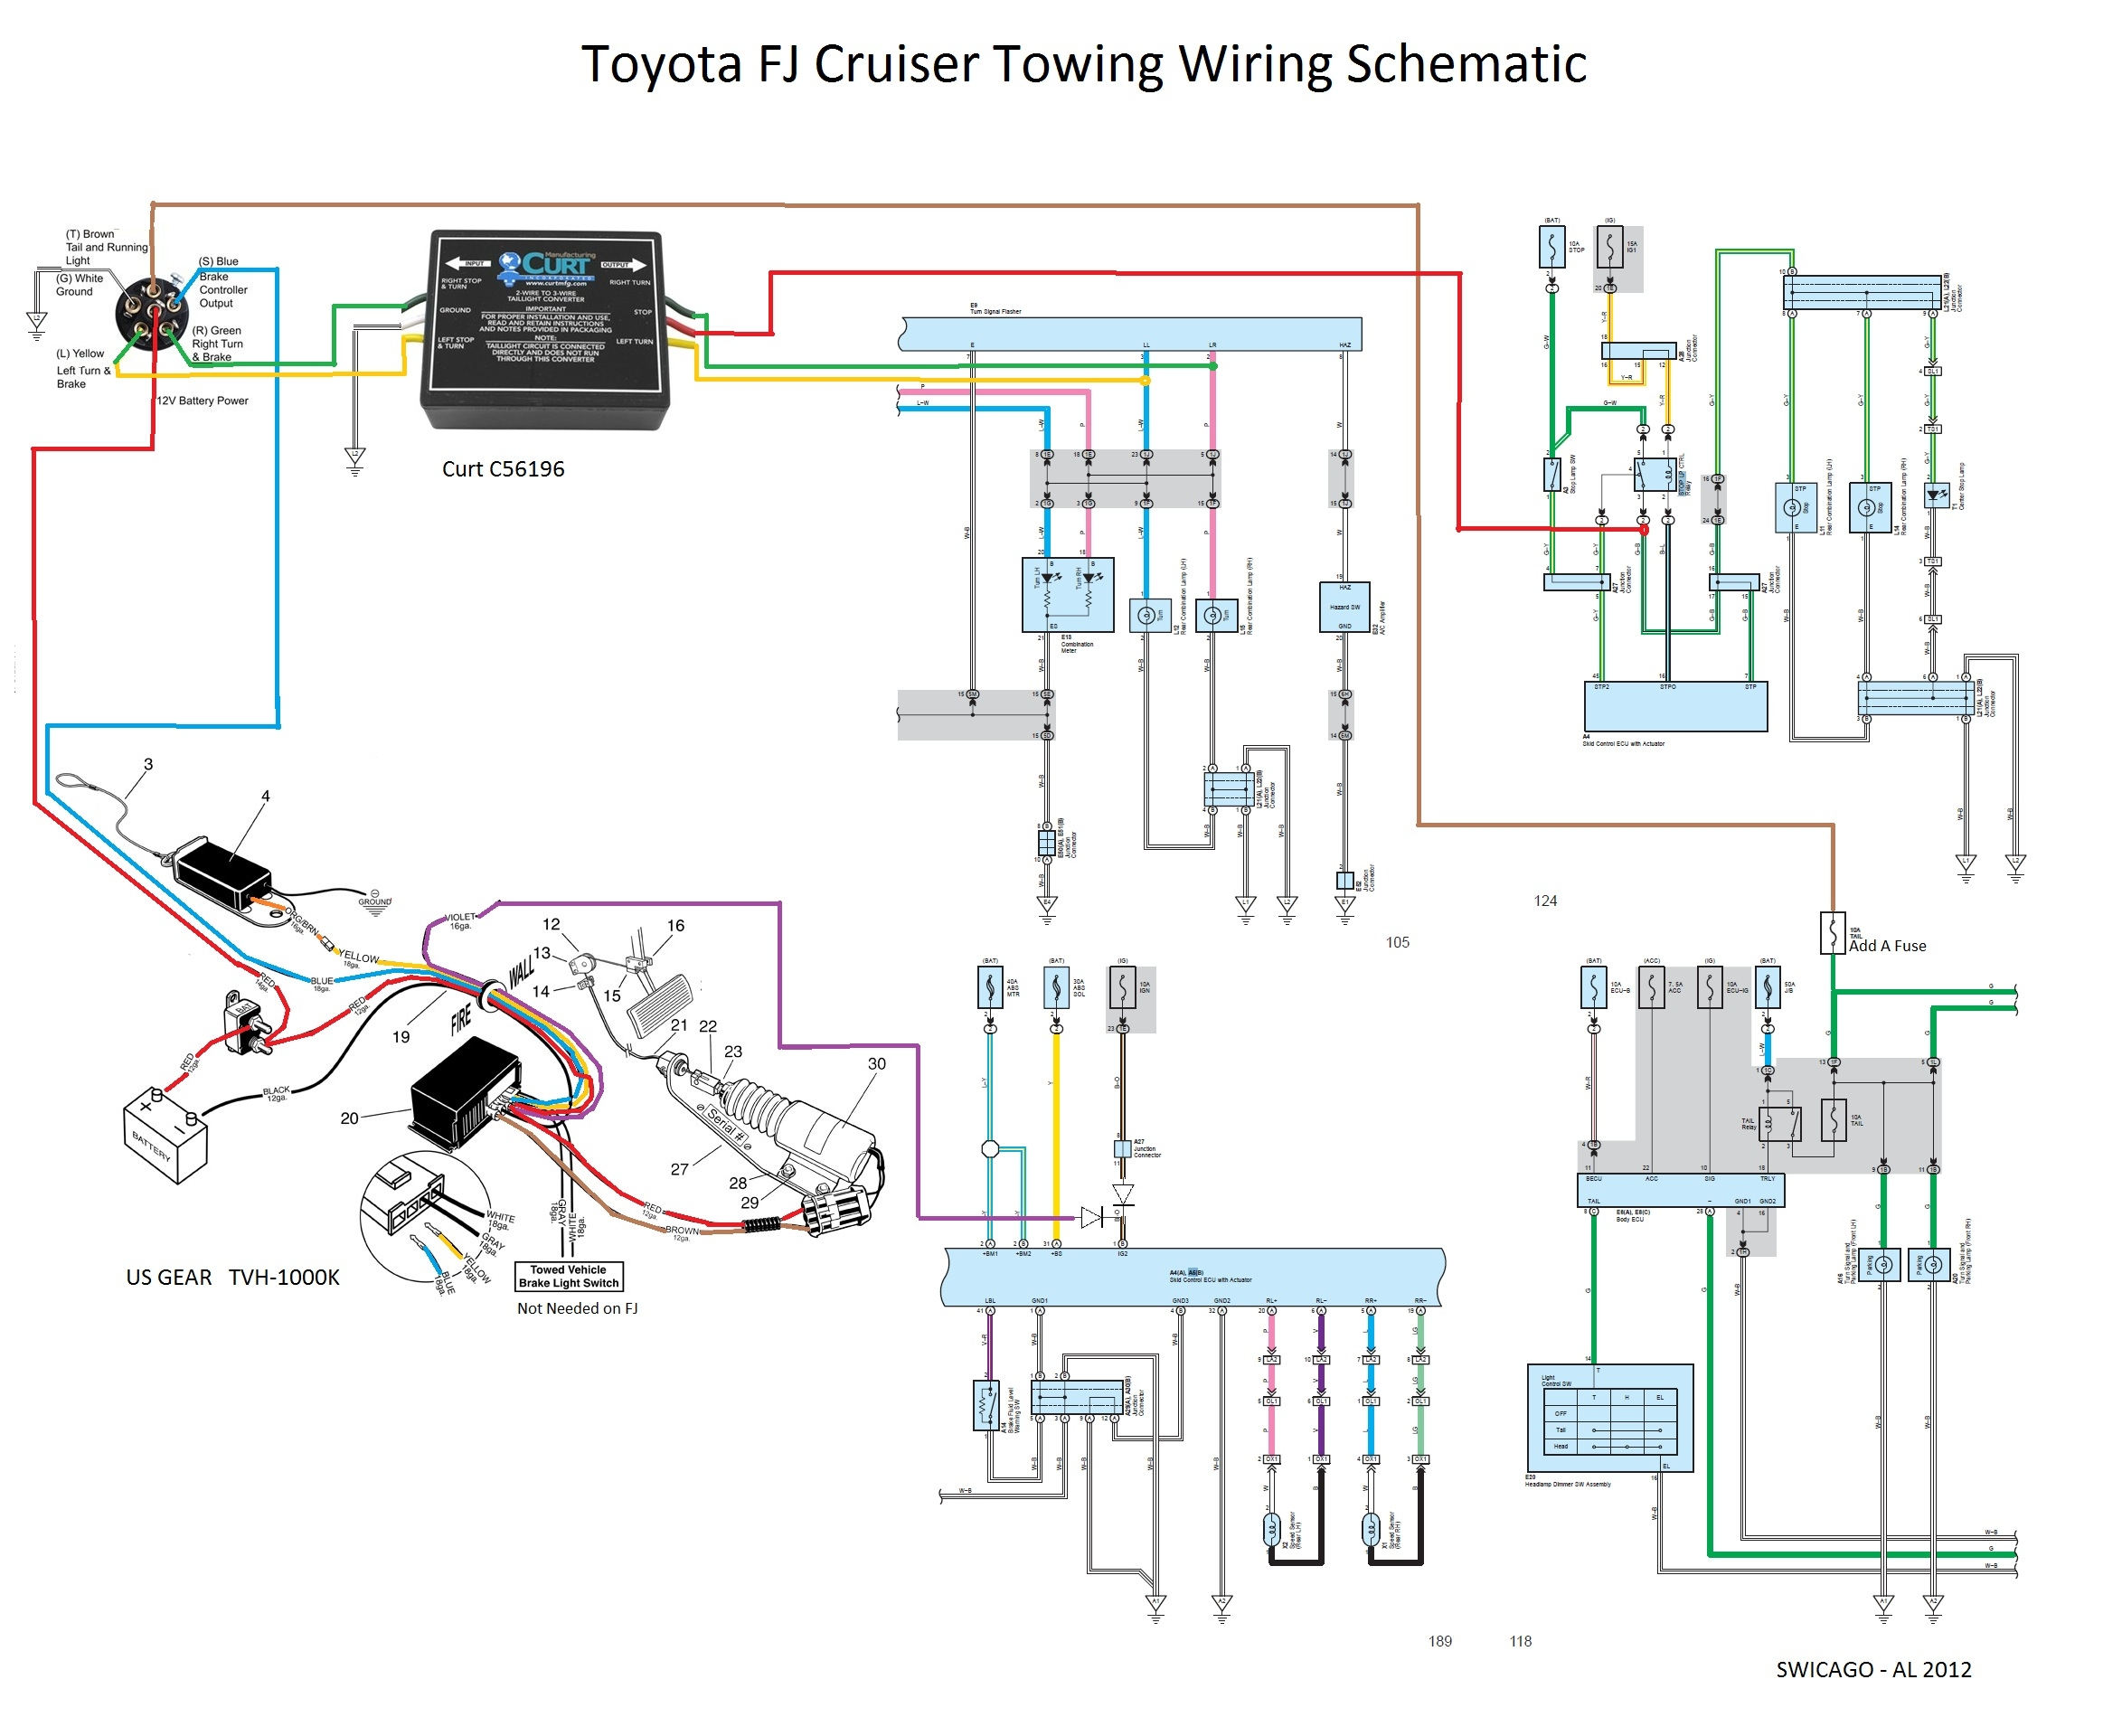 toyota trailer wiring diagram Download-Toyota Tundra Trailer Wiring Harness Diagram Beautiful Flat tow 6mt Yes It Can Be Done toyota 7-d